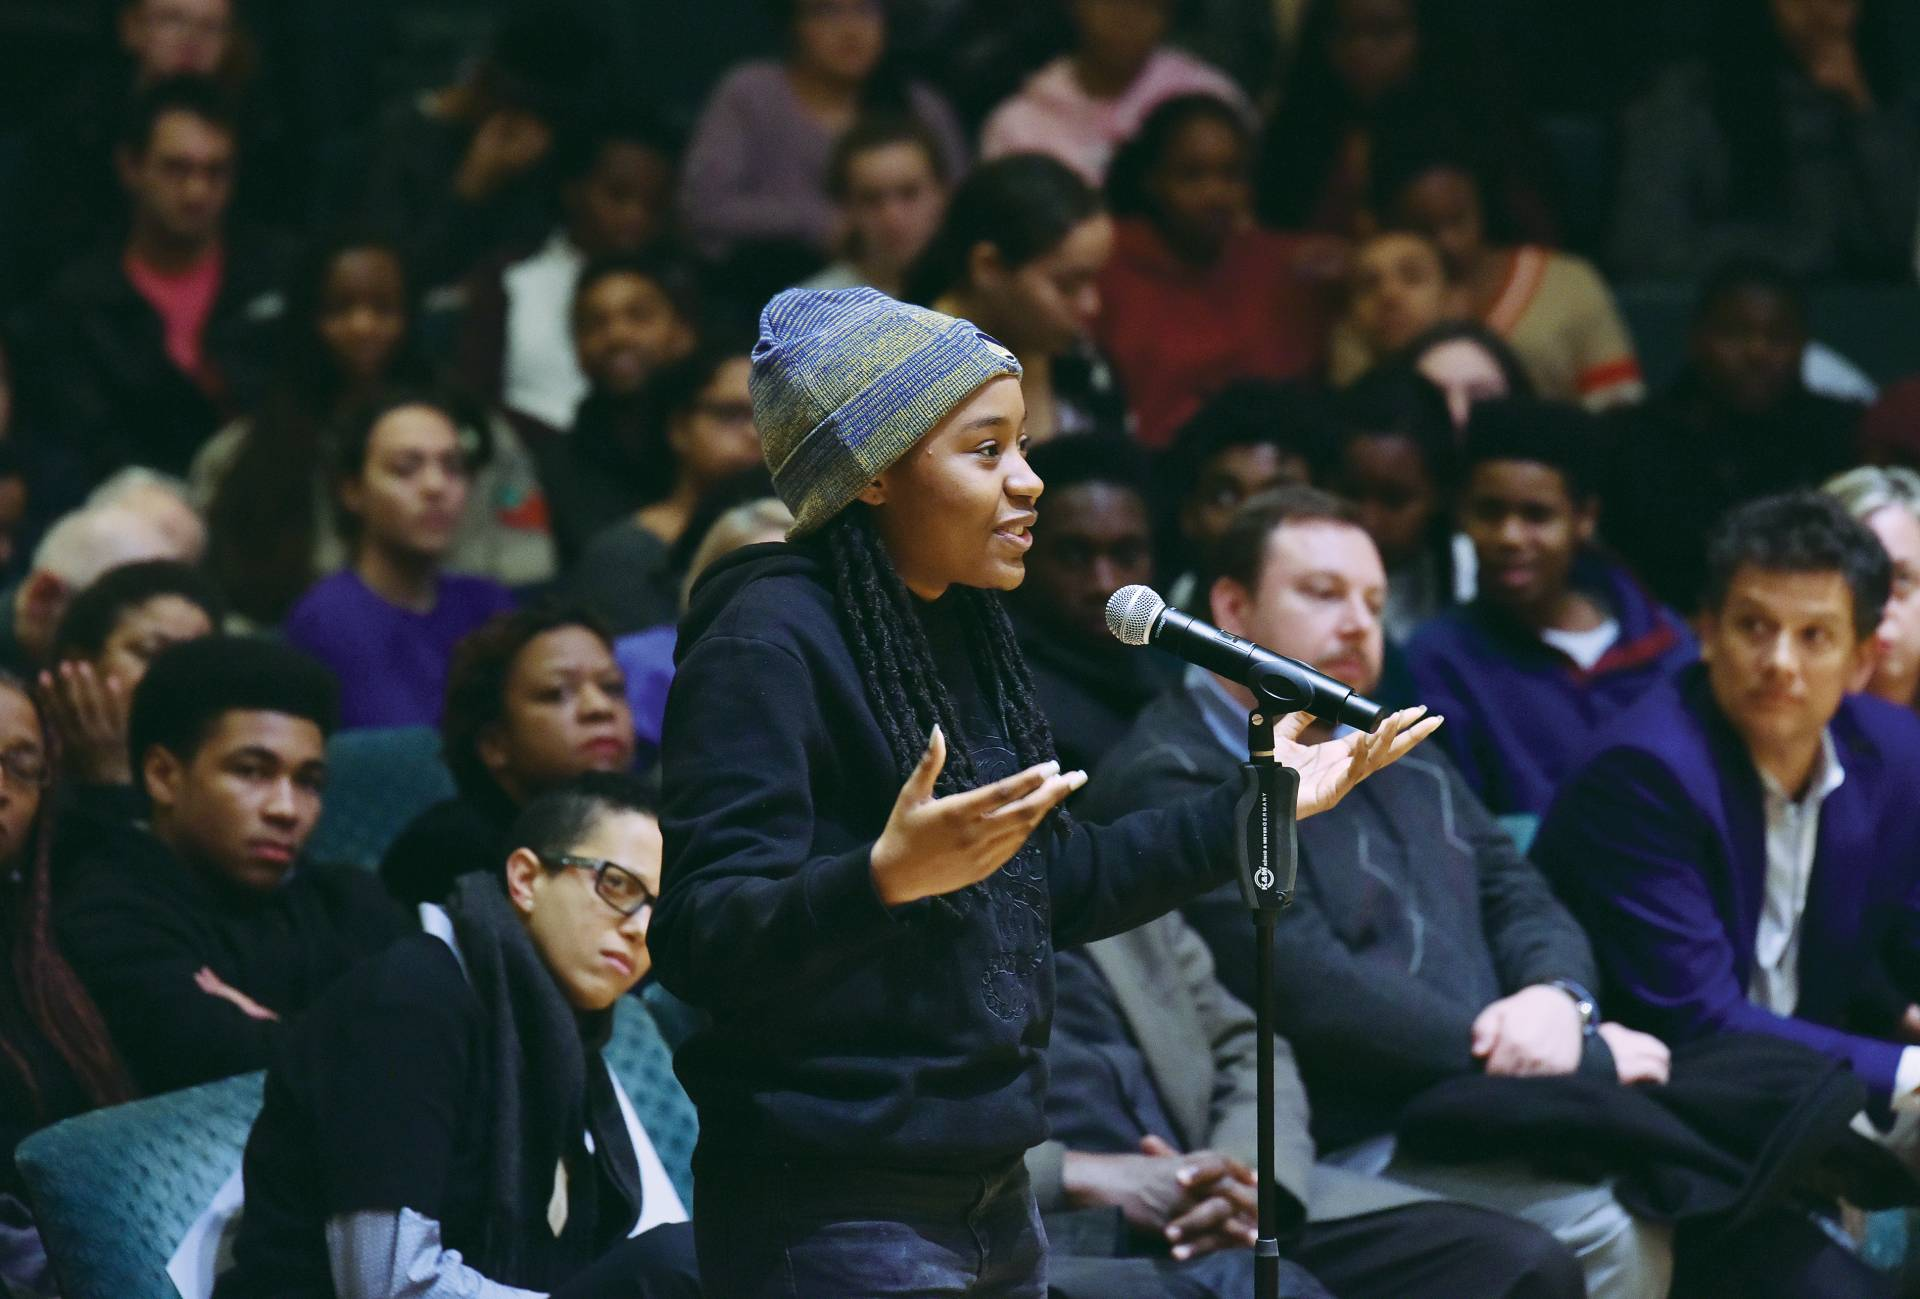 A students poses a question to Ta-Nehisi Coates